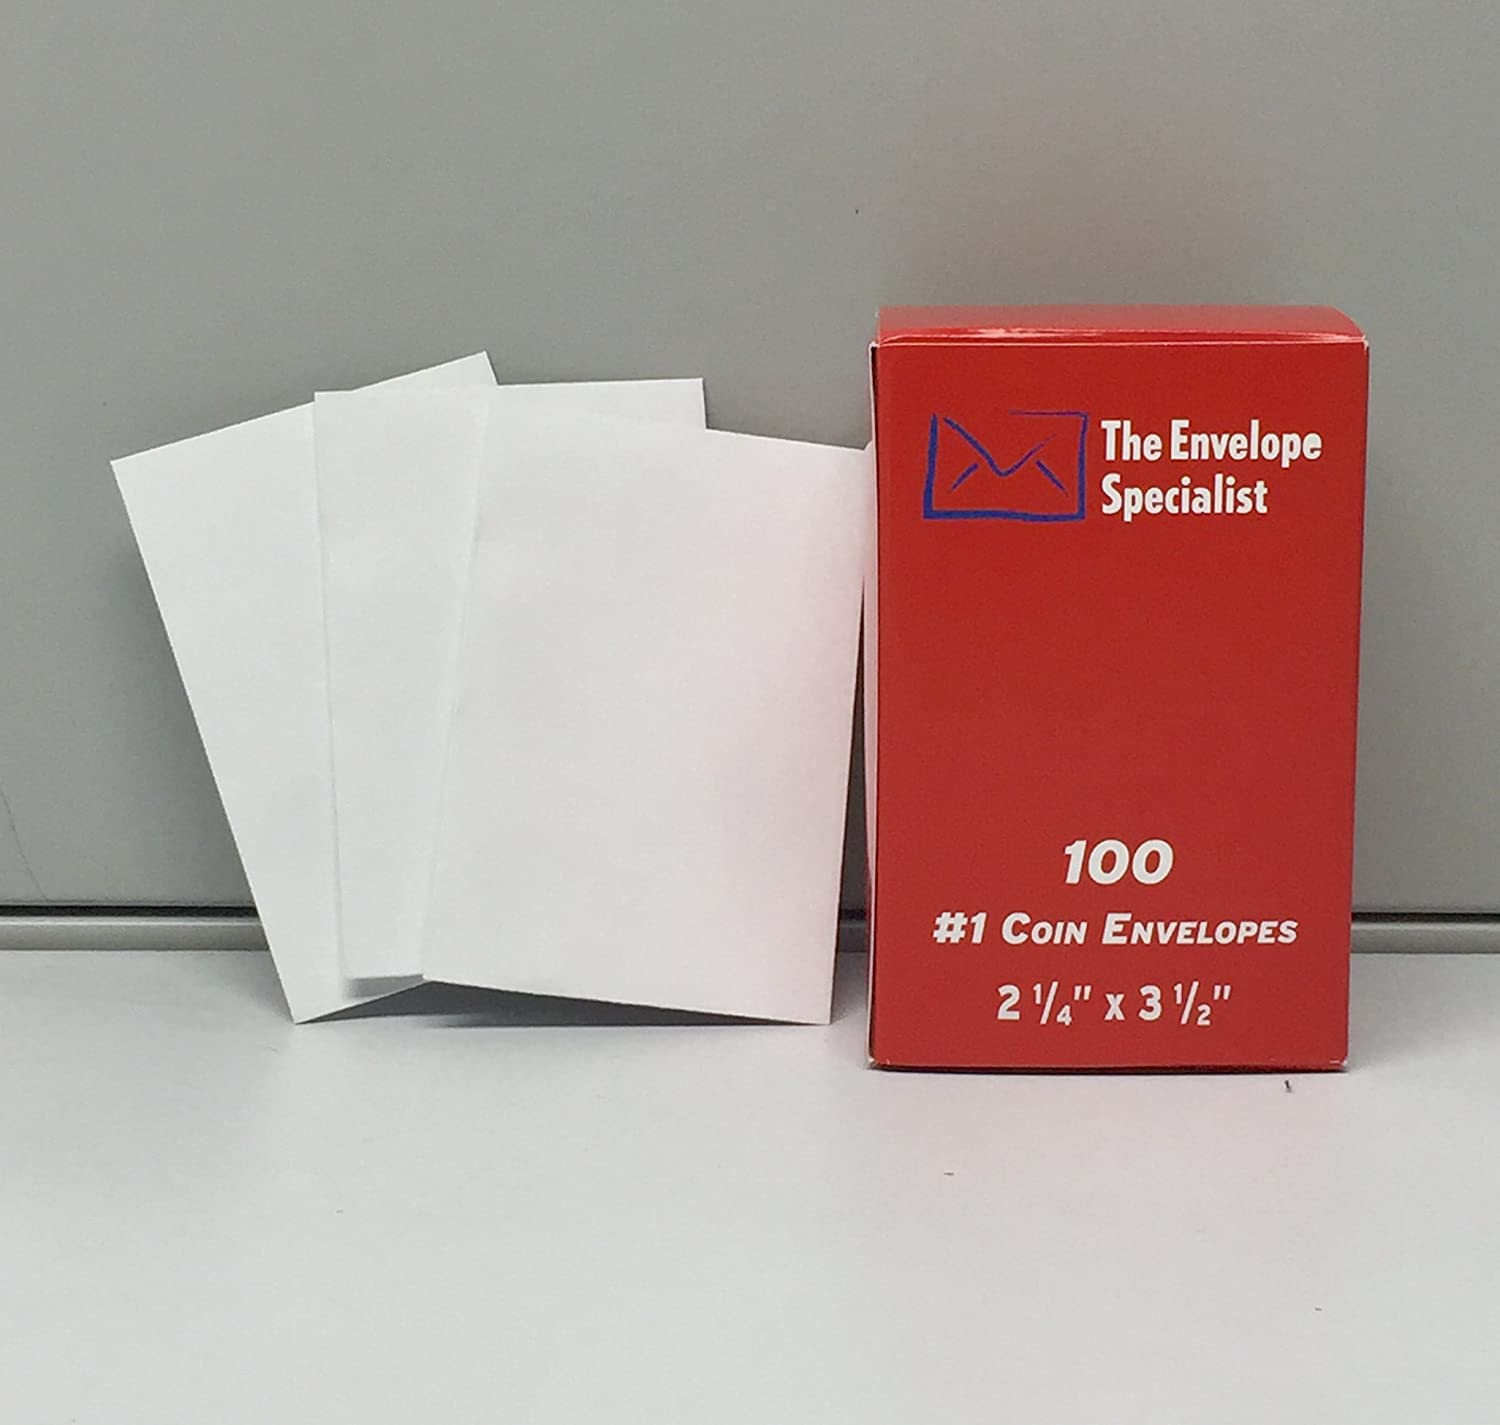 #1 Coin Envelope 2 1/4 x 3 1/2 White Wove 100 Envelopes per pack The Envelope Specialist